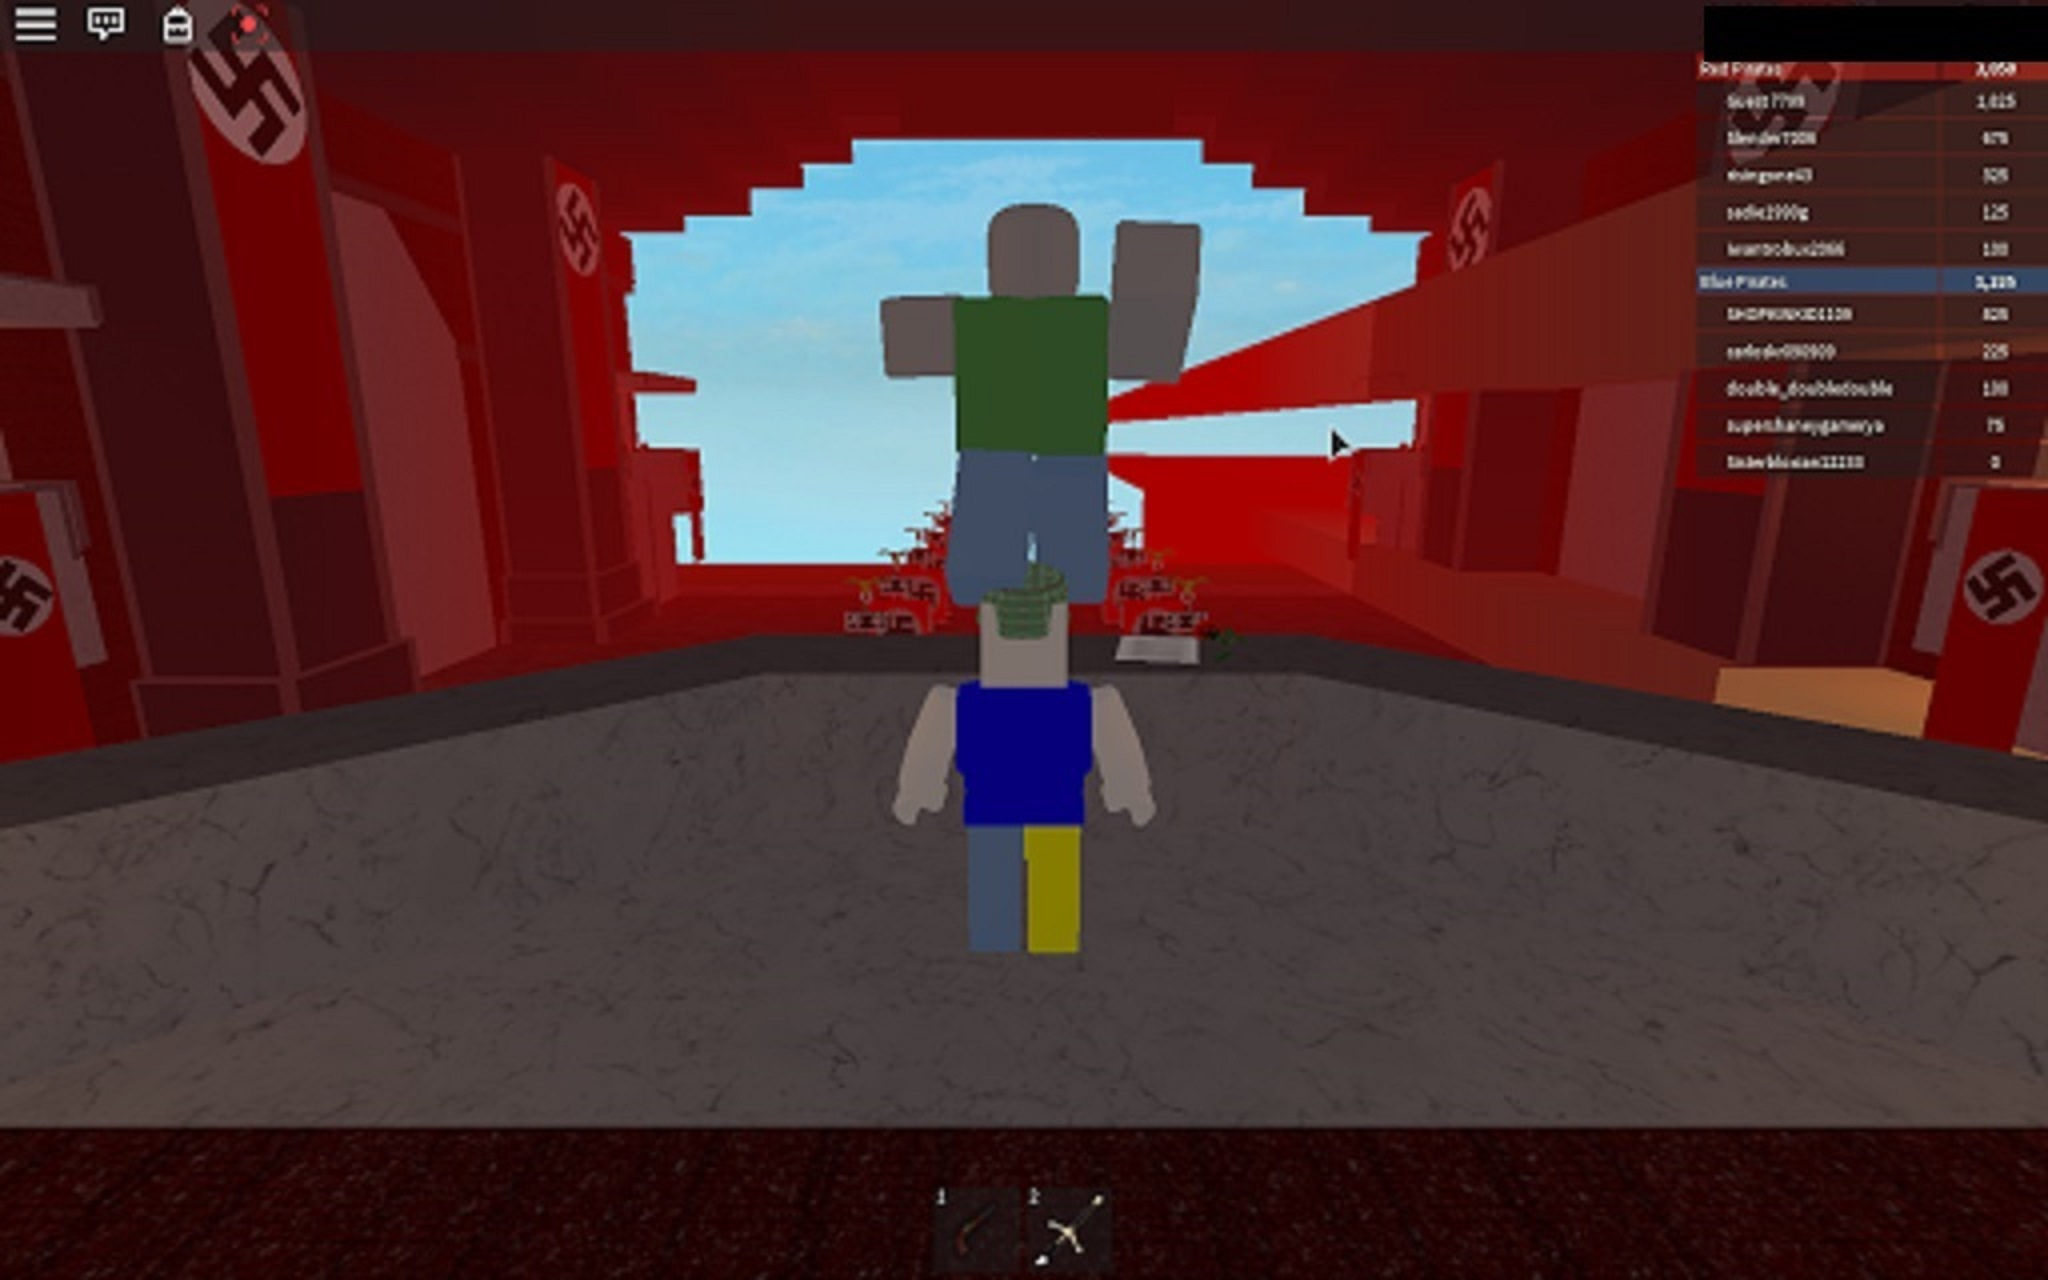 Porn And Swastikas Have Infiltrated Roblox